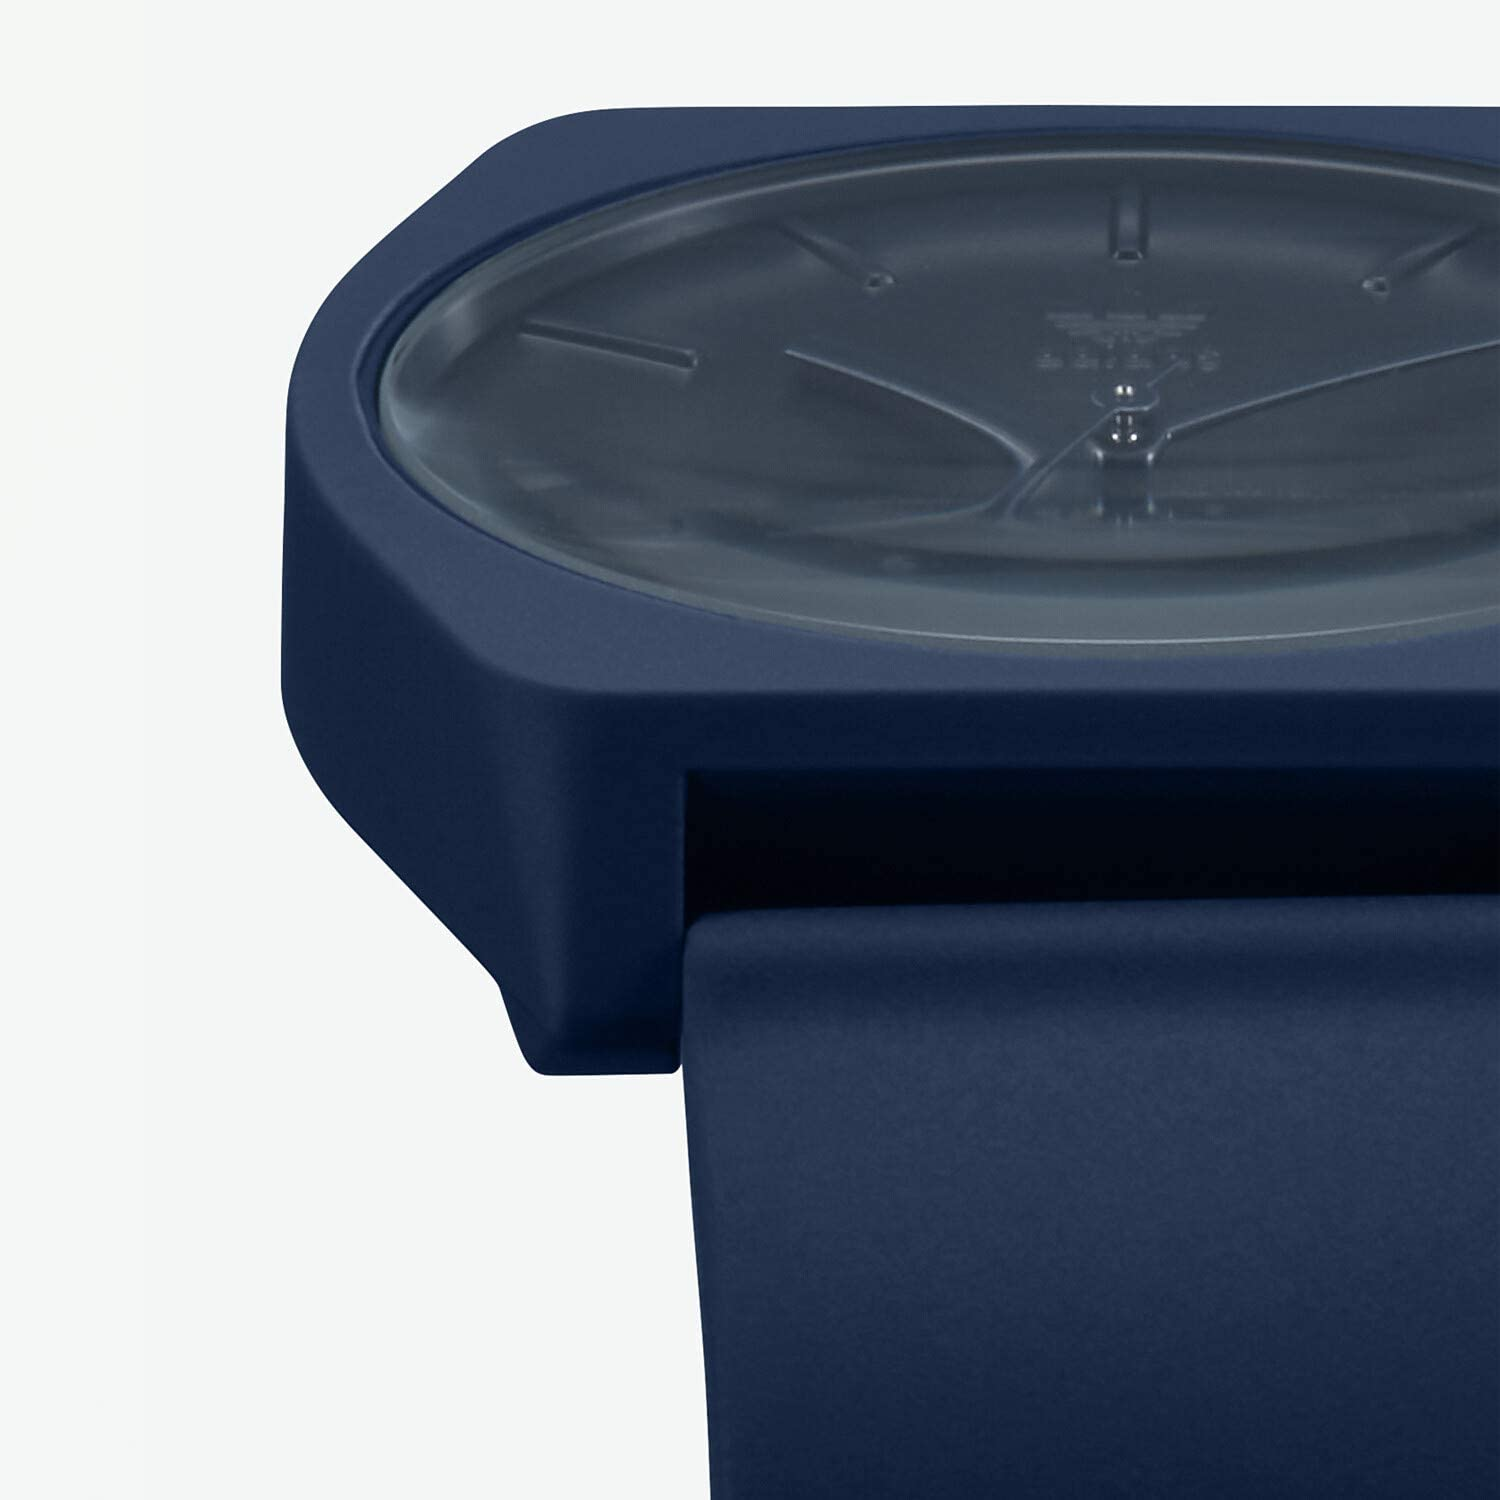 adidas Watches Process_SP1. Silicone Strap, 20mm Width (38 mm). All Collegiate Navy